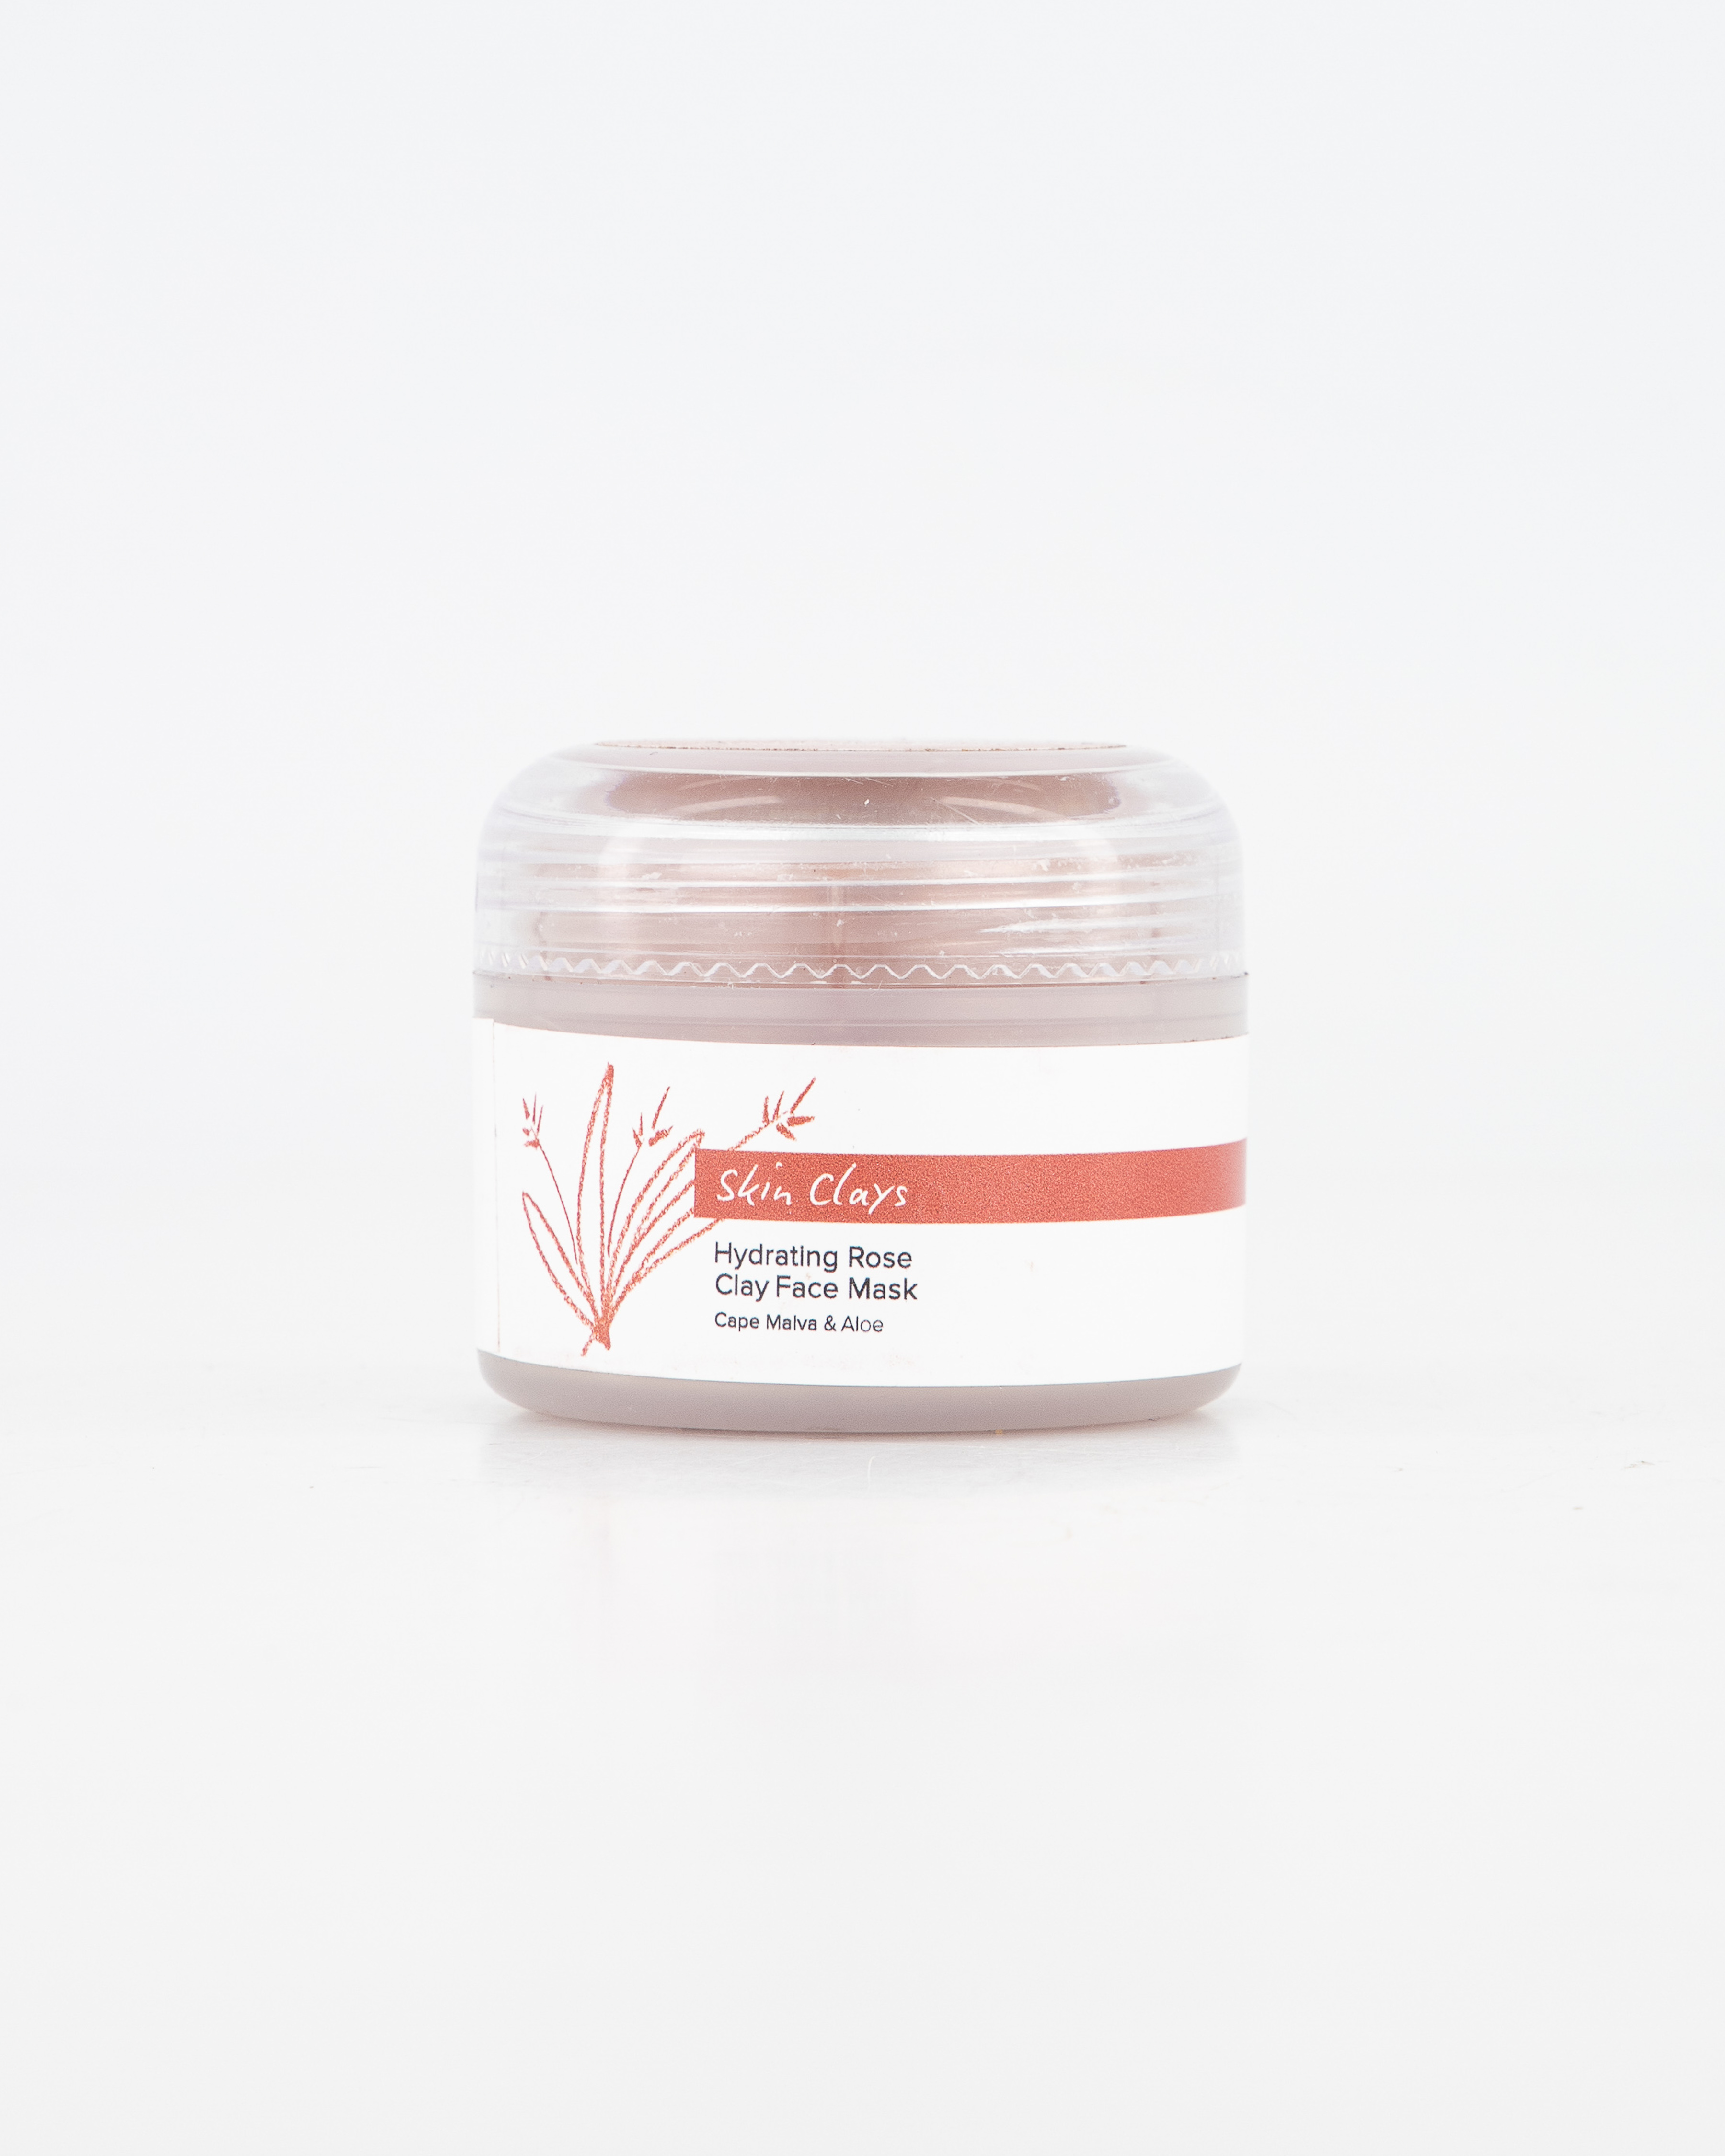 Hydrating Rose Clay Face Mask